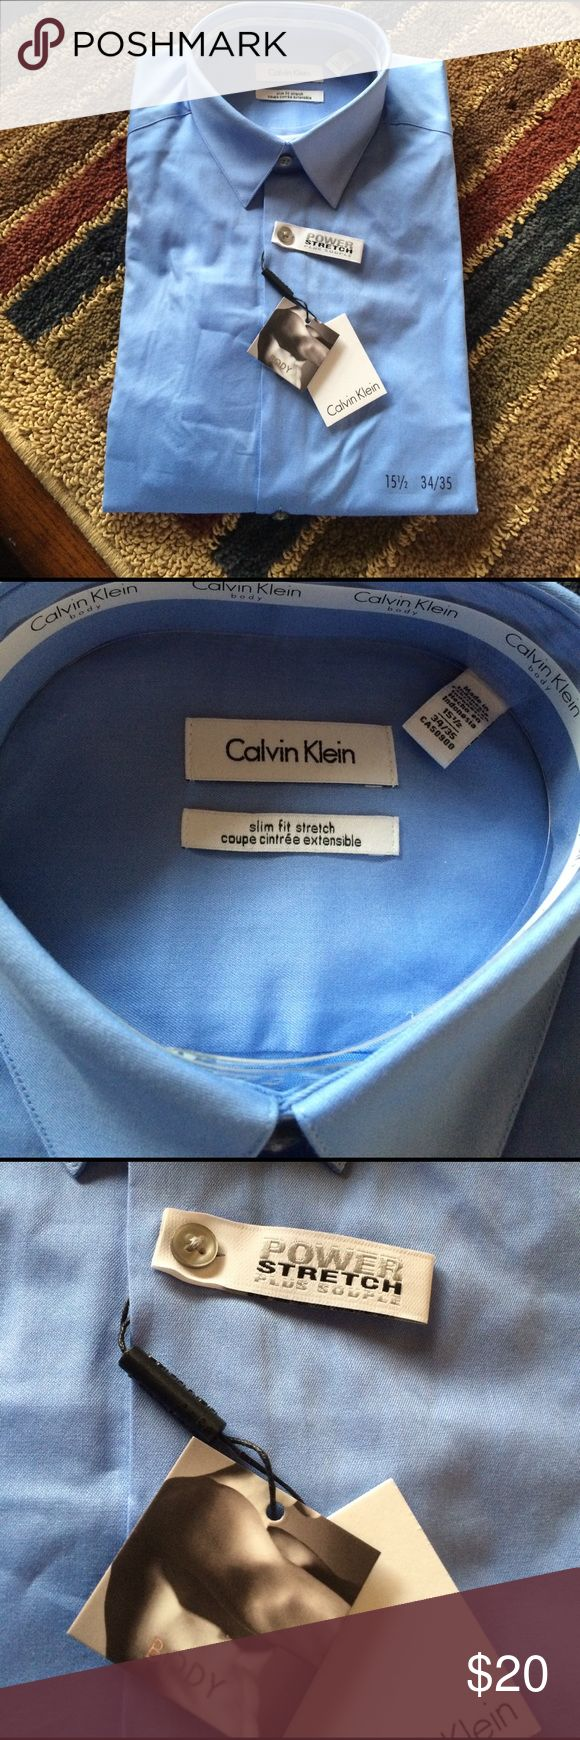 Calvin Klein Men's Shirt Sky blue, button down, power stretch plus souple, body defining fit with forward shifted side seams for slim fit. With the stretch for ease of movement. Long sleeve, dress shirt with tie ready collar. Never worn, regular price was 65.00. Still folded from manufacturers. Price is ready for quick sell. Calvin Klein Shirts Dress Shirts